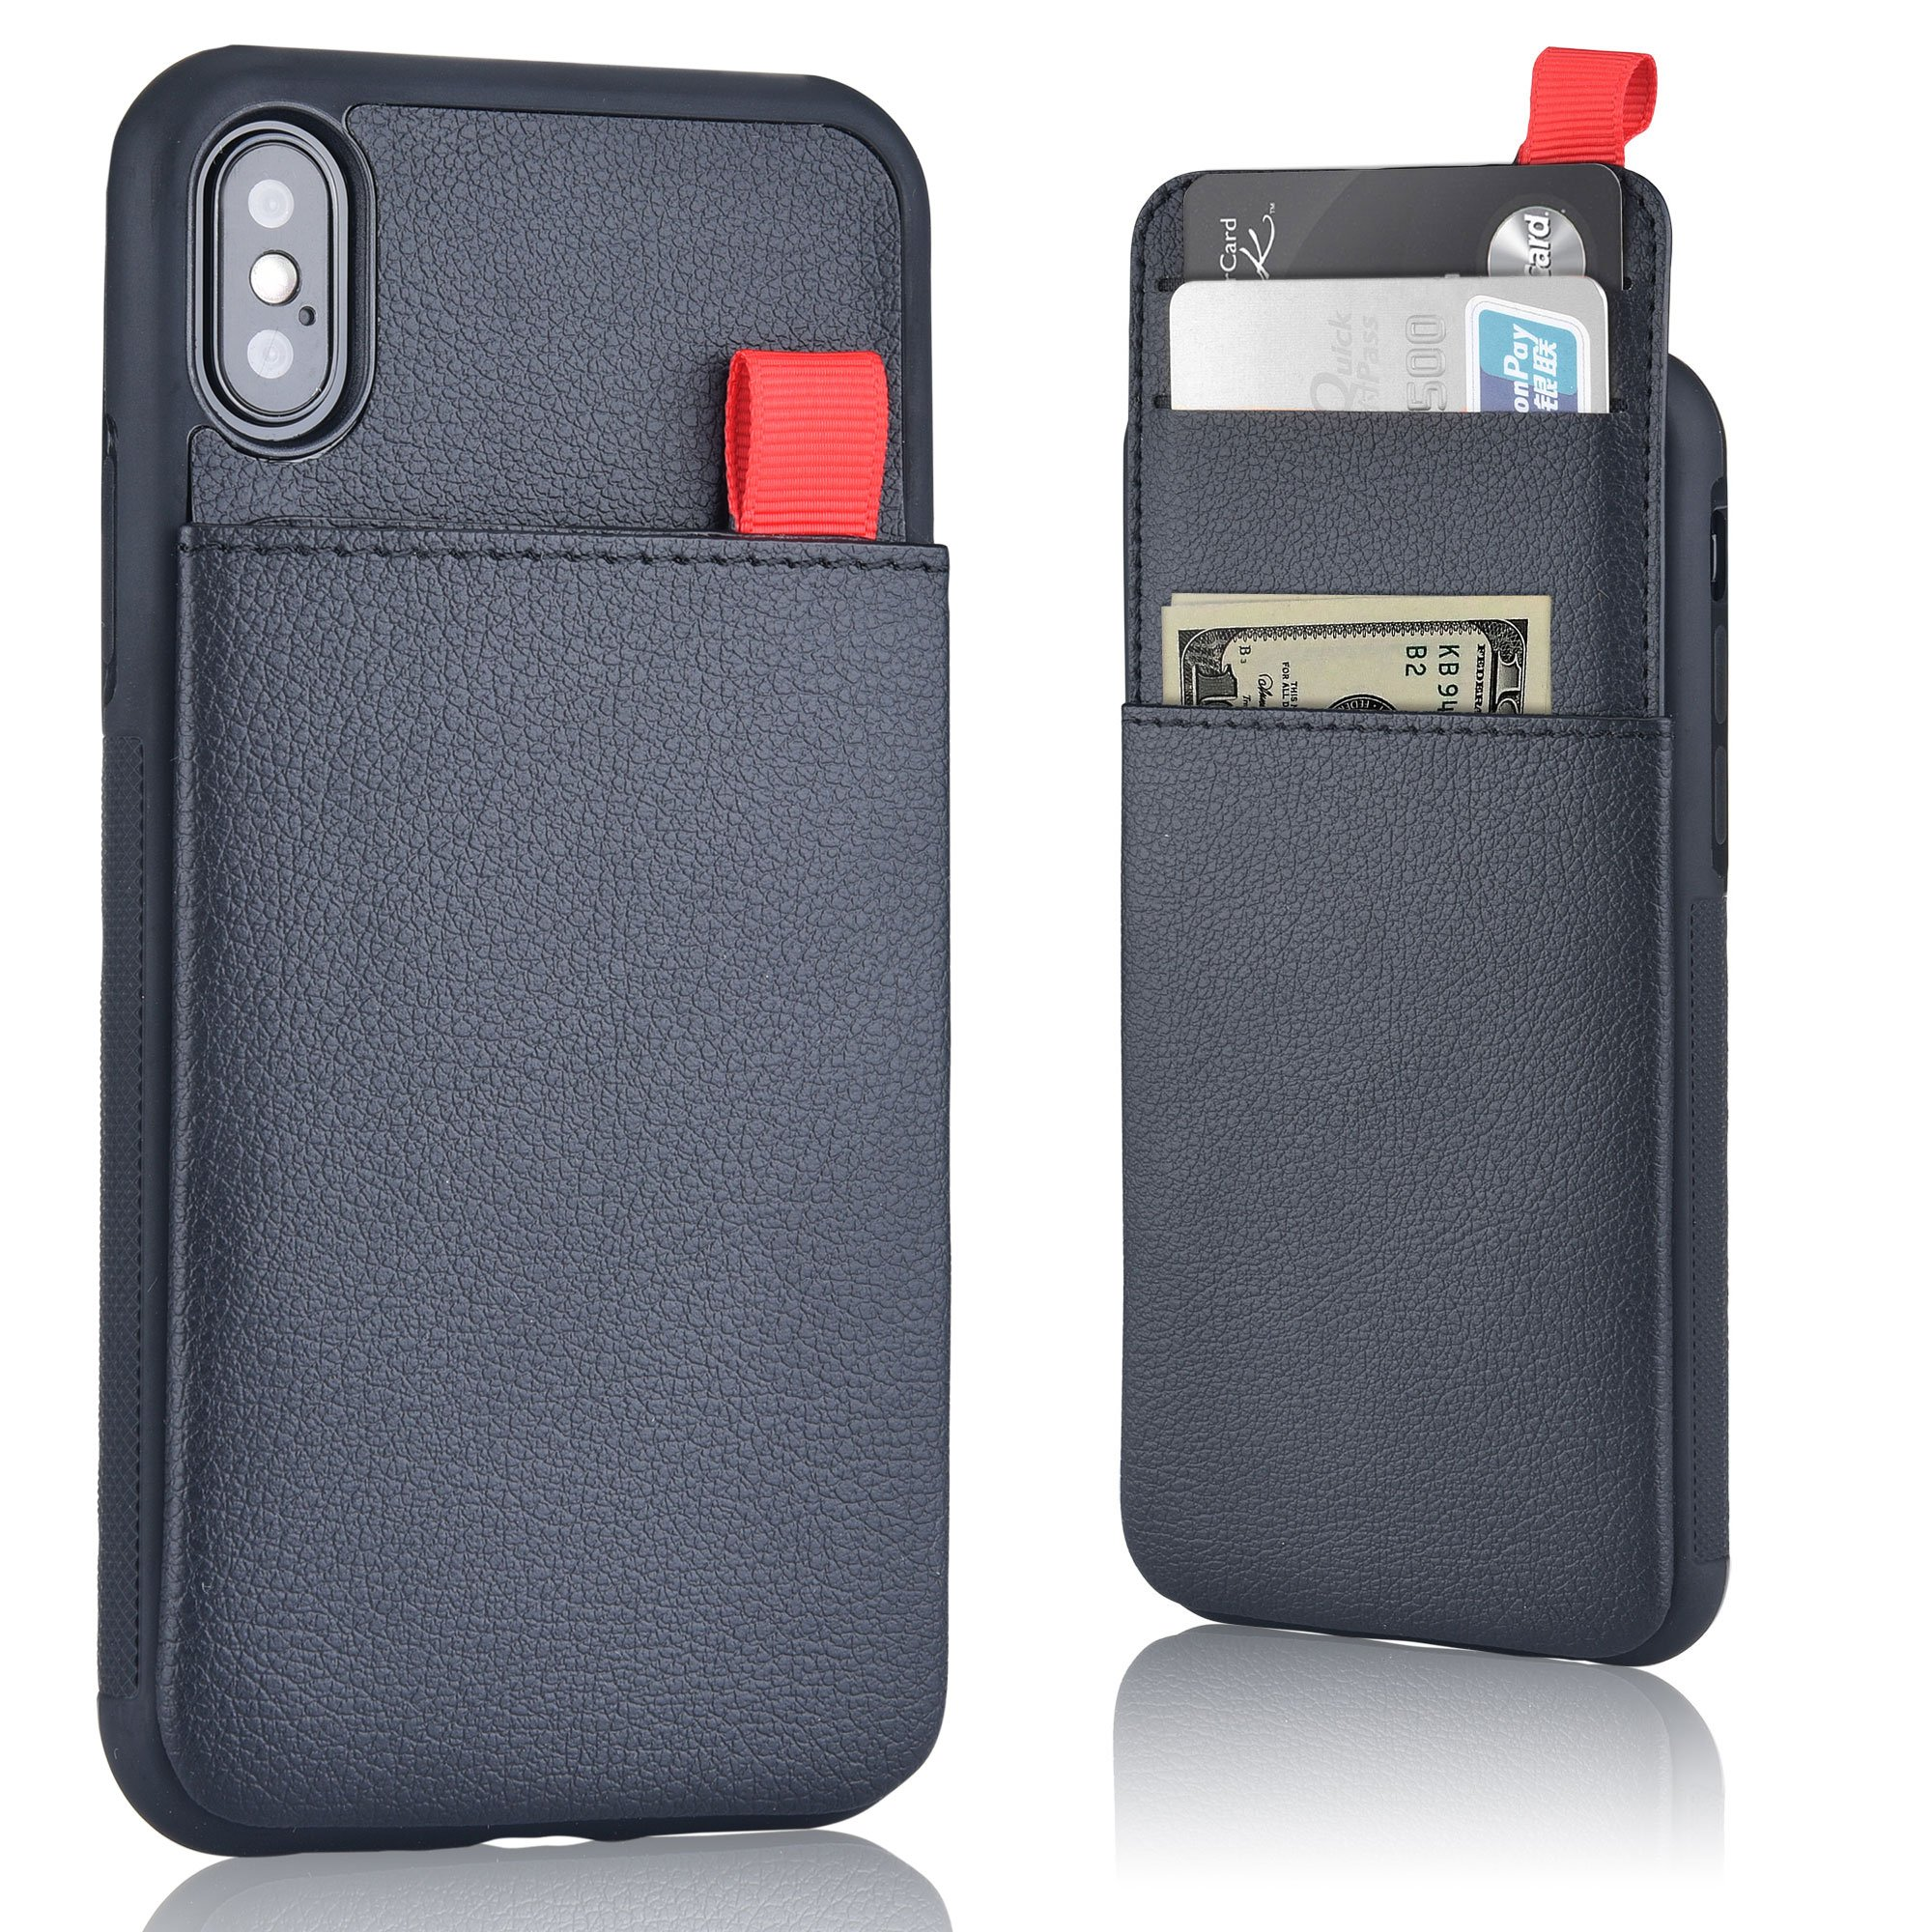 MANGATA Triton Leather Wallet case Compatible iPhone X | Slide Out Hidden Wallet Pocket, Rugged Shell | Cruelty Free Leather | Credit Card Holder, Cash Pocket, Men Women, Screen Protector (Black)